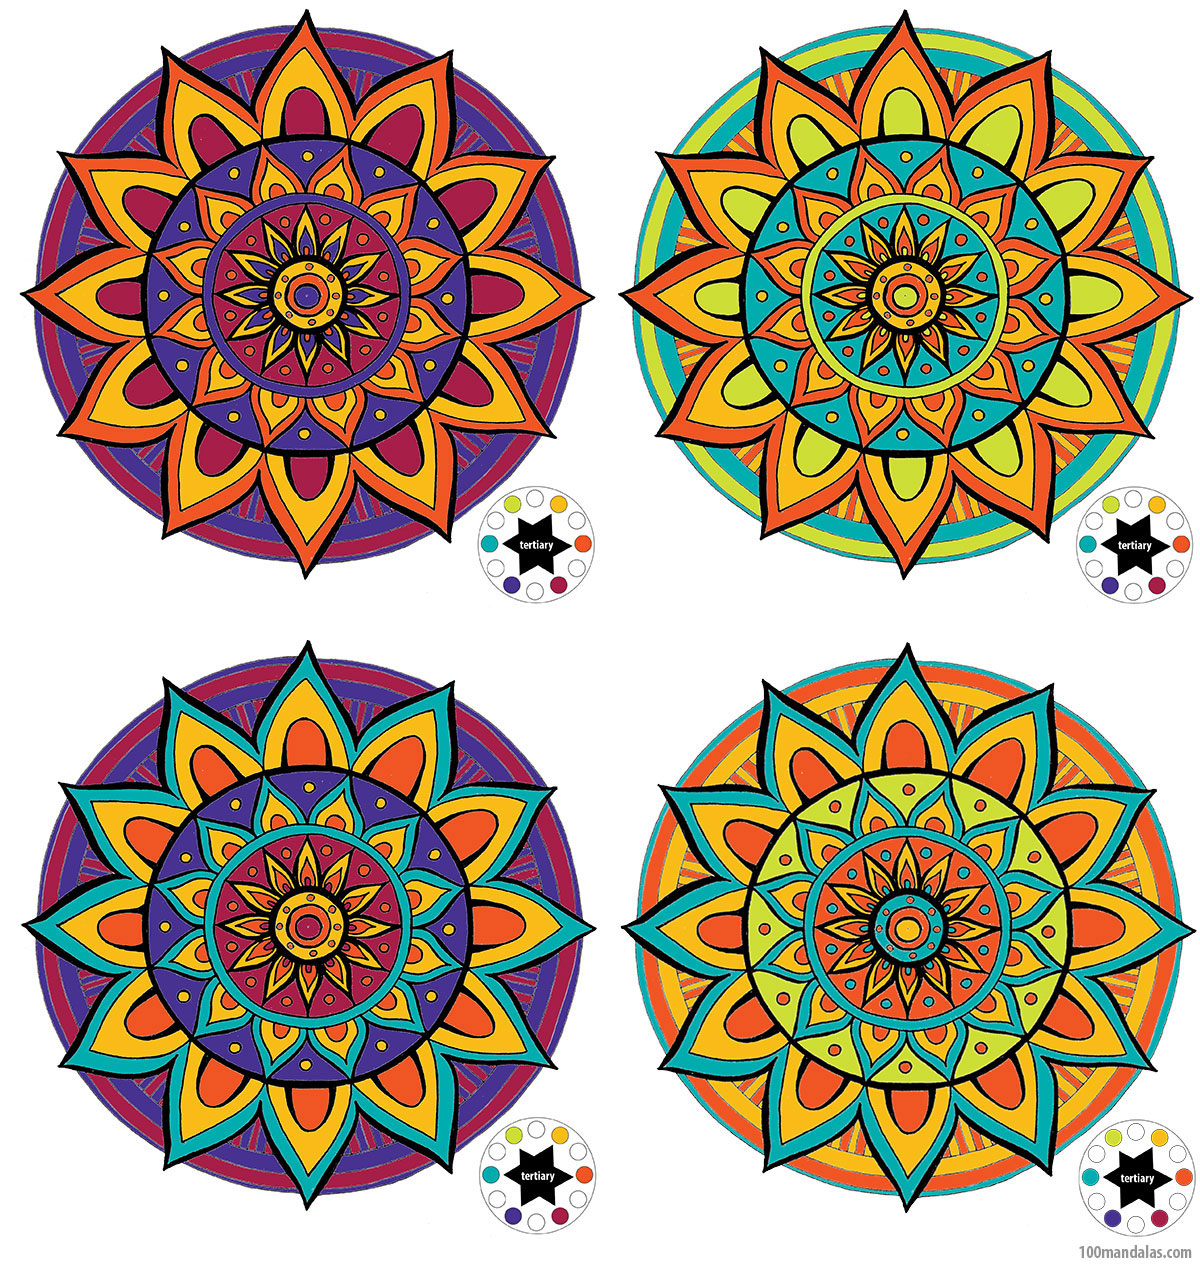 - Coloring Mandalas – How To Choose Colors To Create Color Harmony